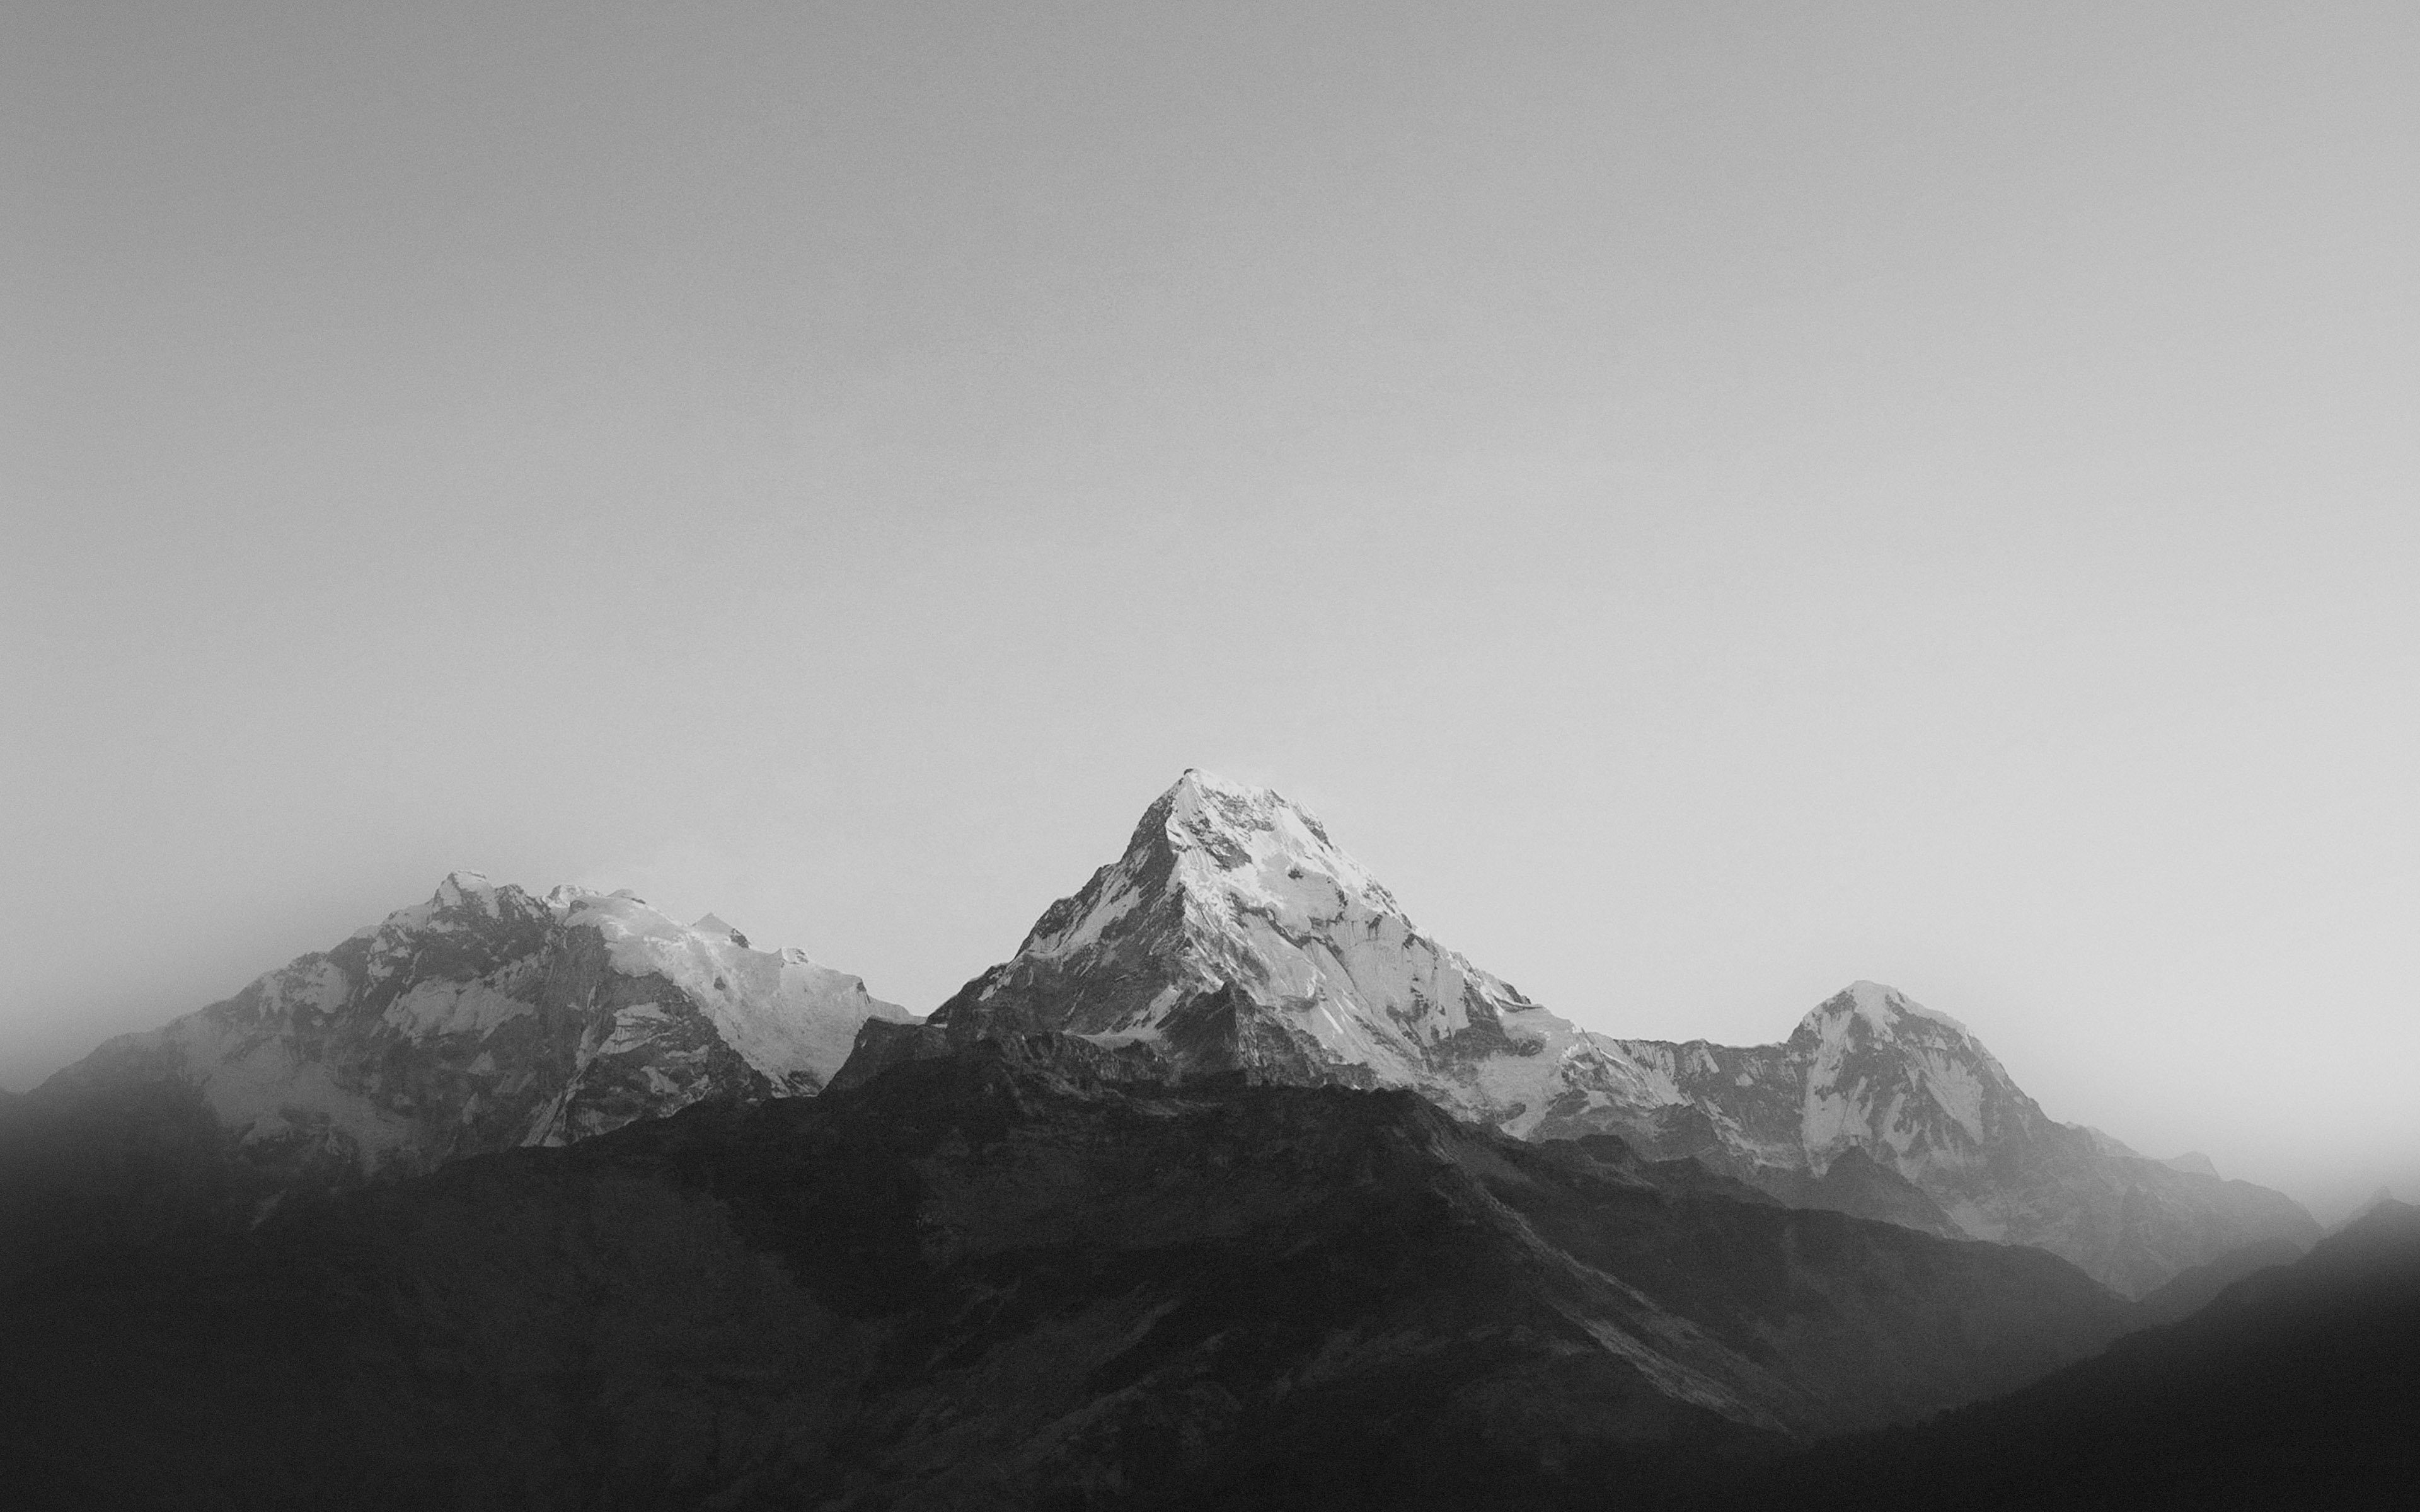 ml66-mountain-bw-dark-high-sky-nature-rocky - Papers.co